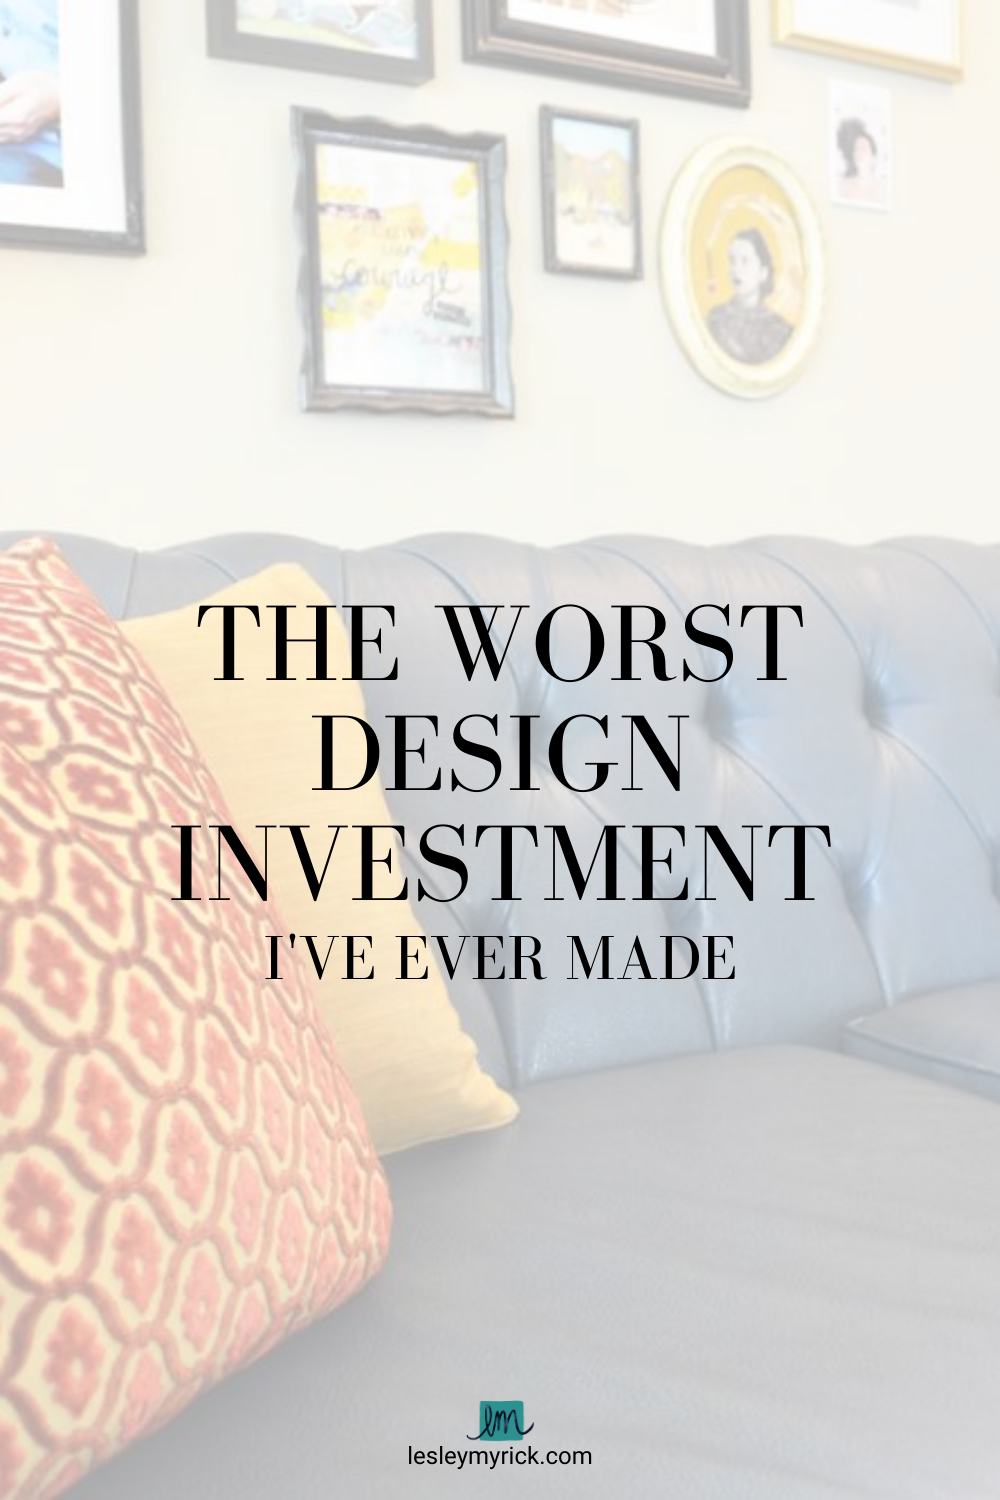 Here's the worst design investment I've ever made while sofa-shopping - and what I learned from it.